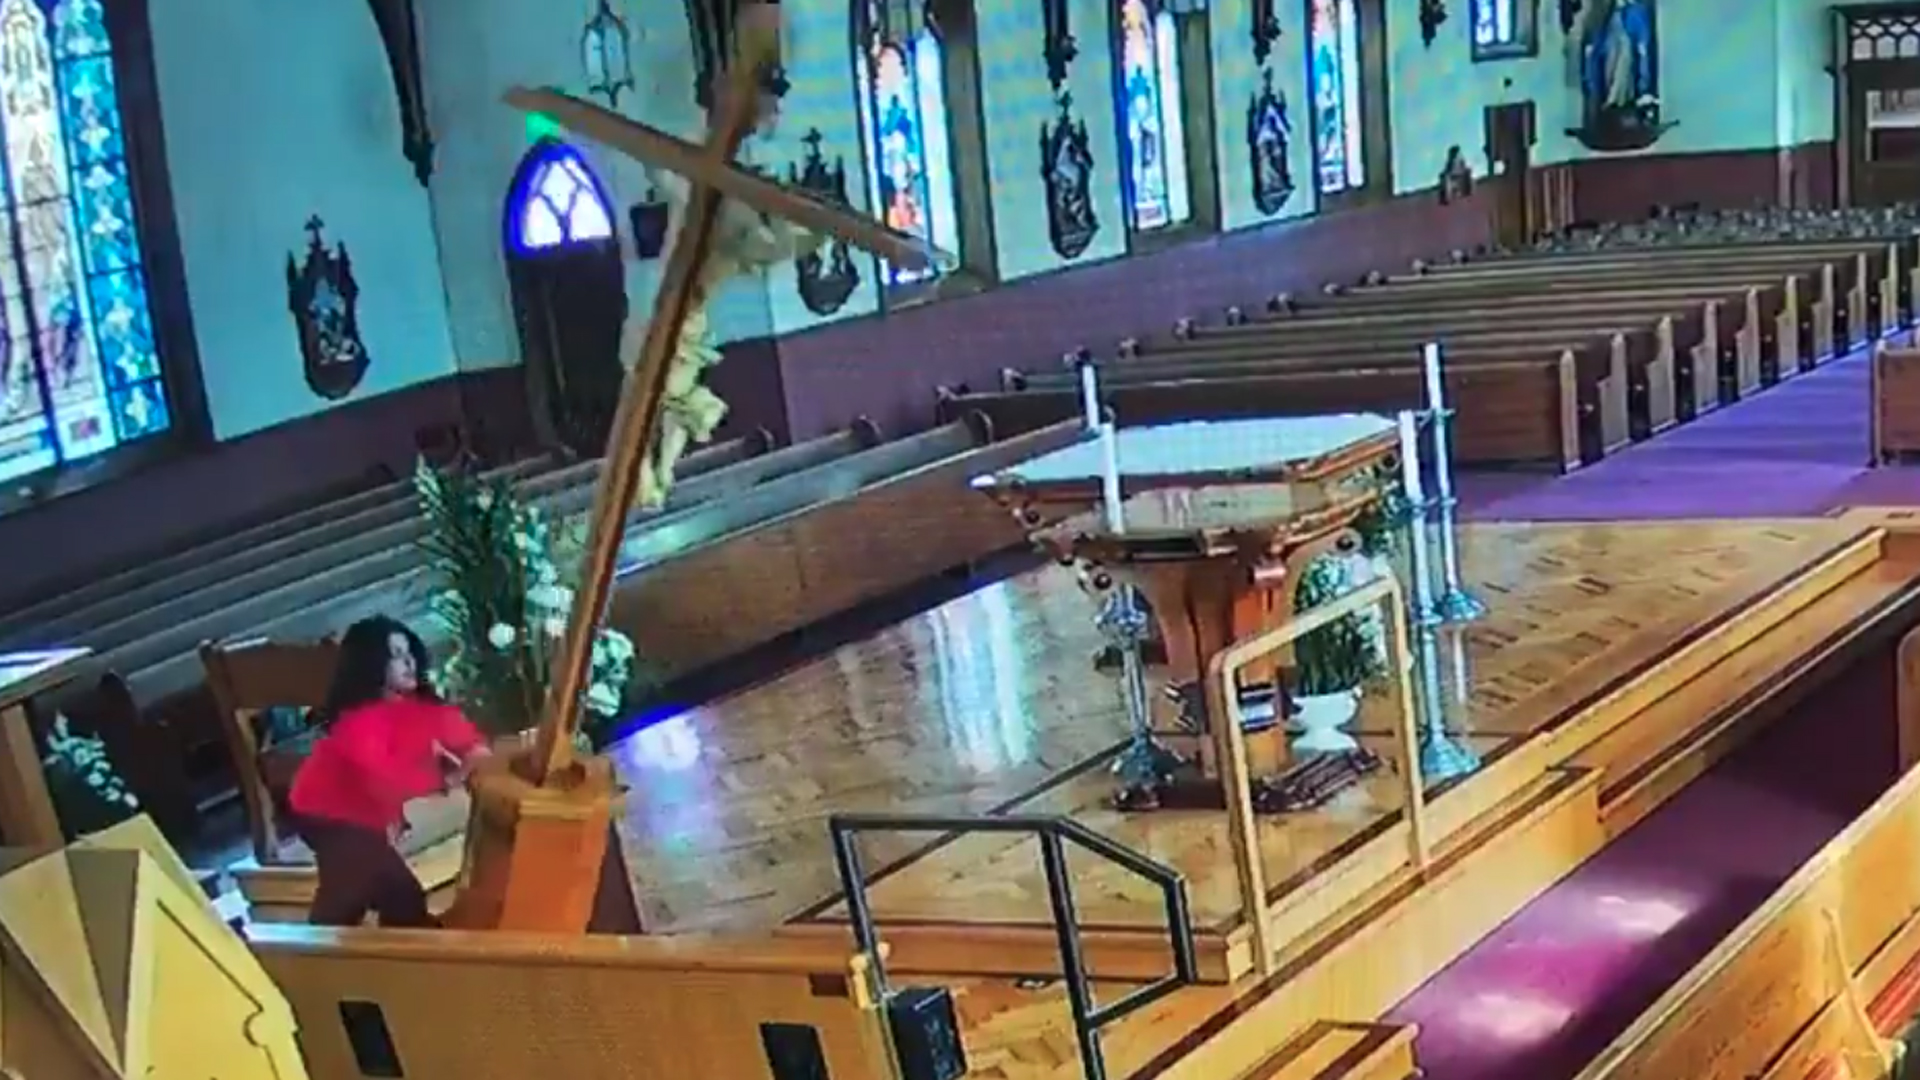 A woman is seen vandalizing a church in Watsonville, in this still from footage released by local police on Feb. 7, 2019.